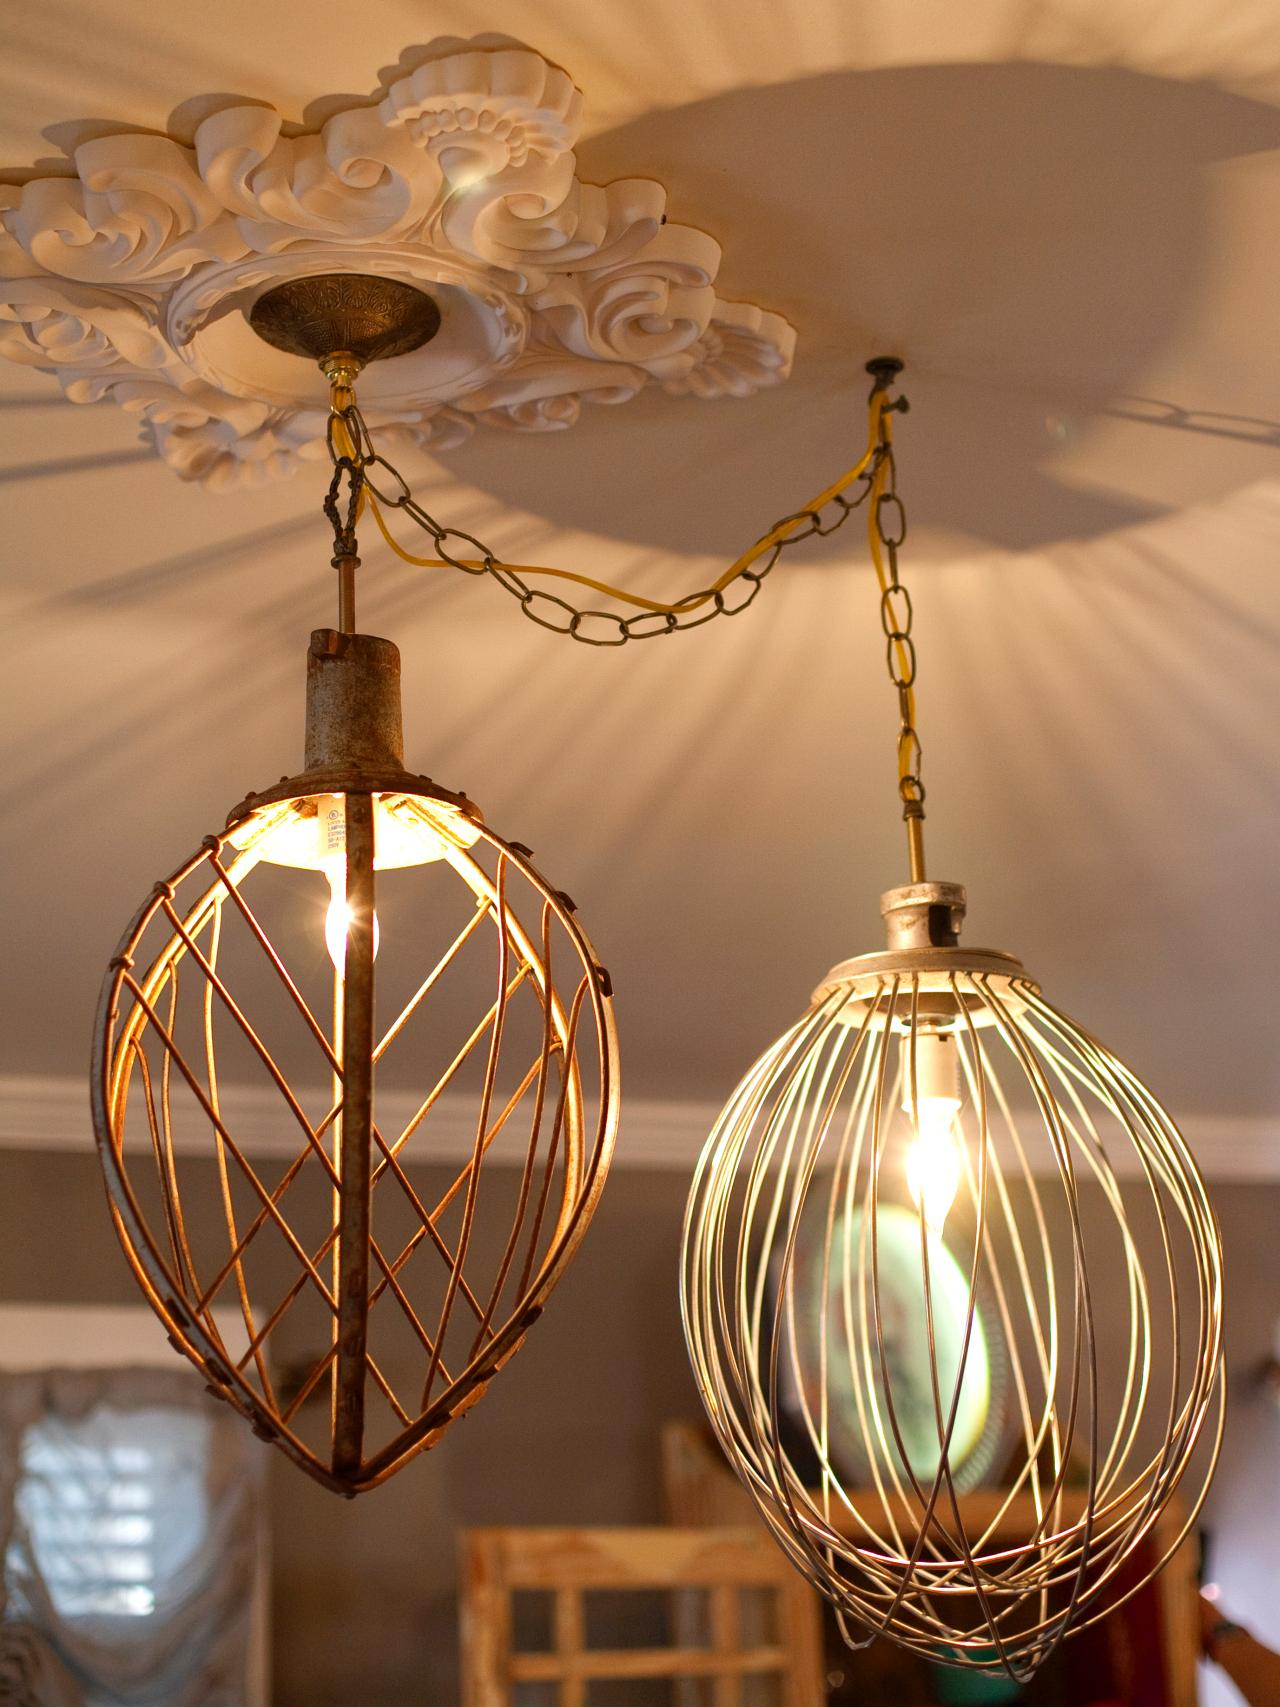 Brighten Up With These DIY Home Lighting Ideas